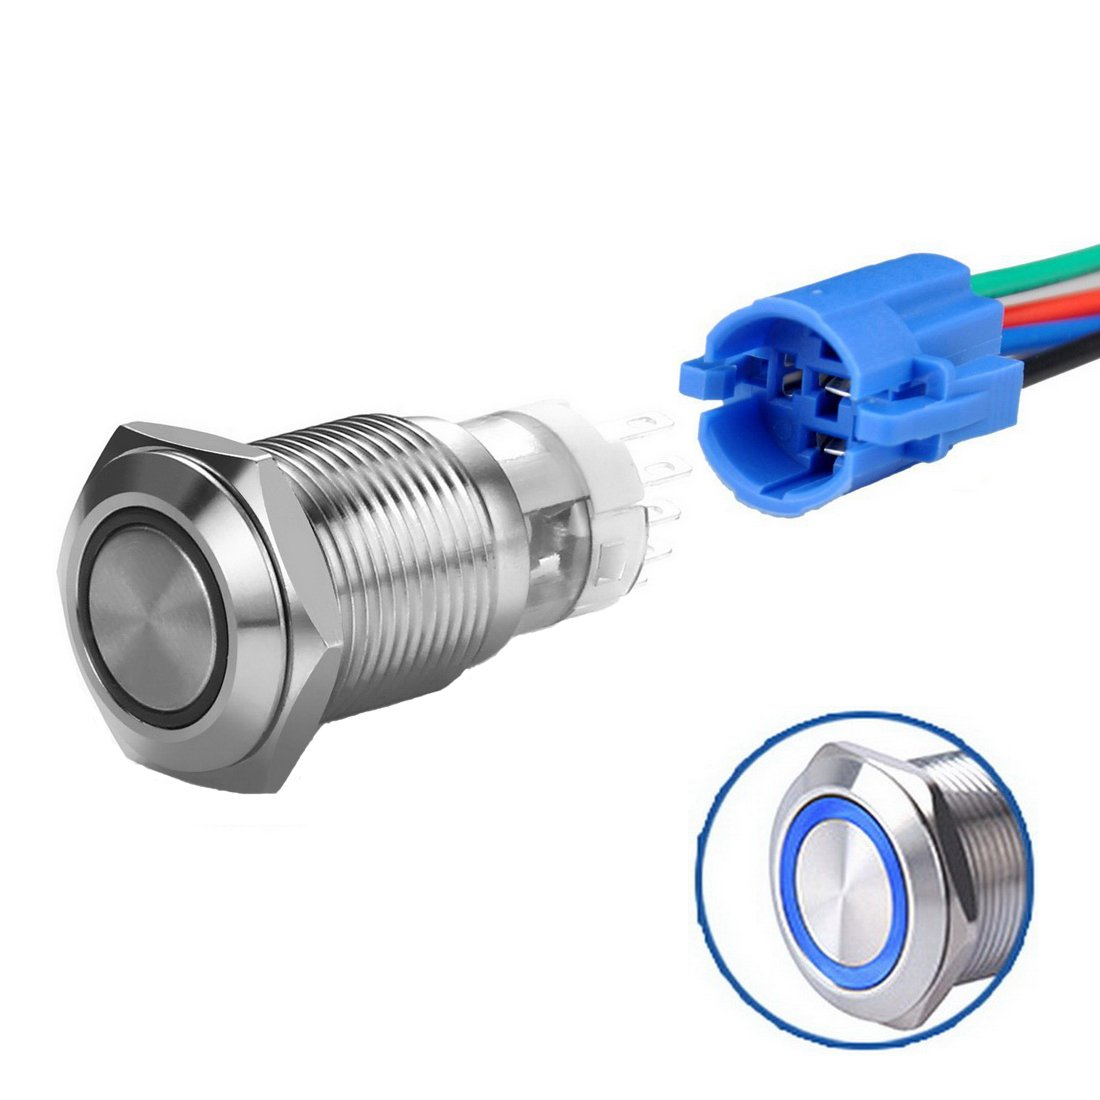 Power Indicator WerFamily 19mm Momentary Push Button Switch 1NO 1NC SPDT ON//Off Waterproof Stainless Steel Metal Round with Blue LED Angel Eye